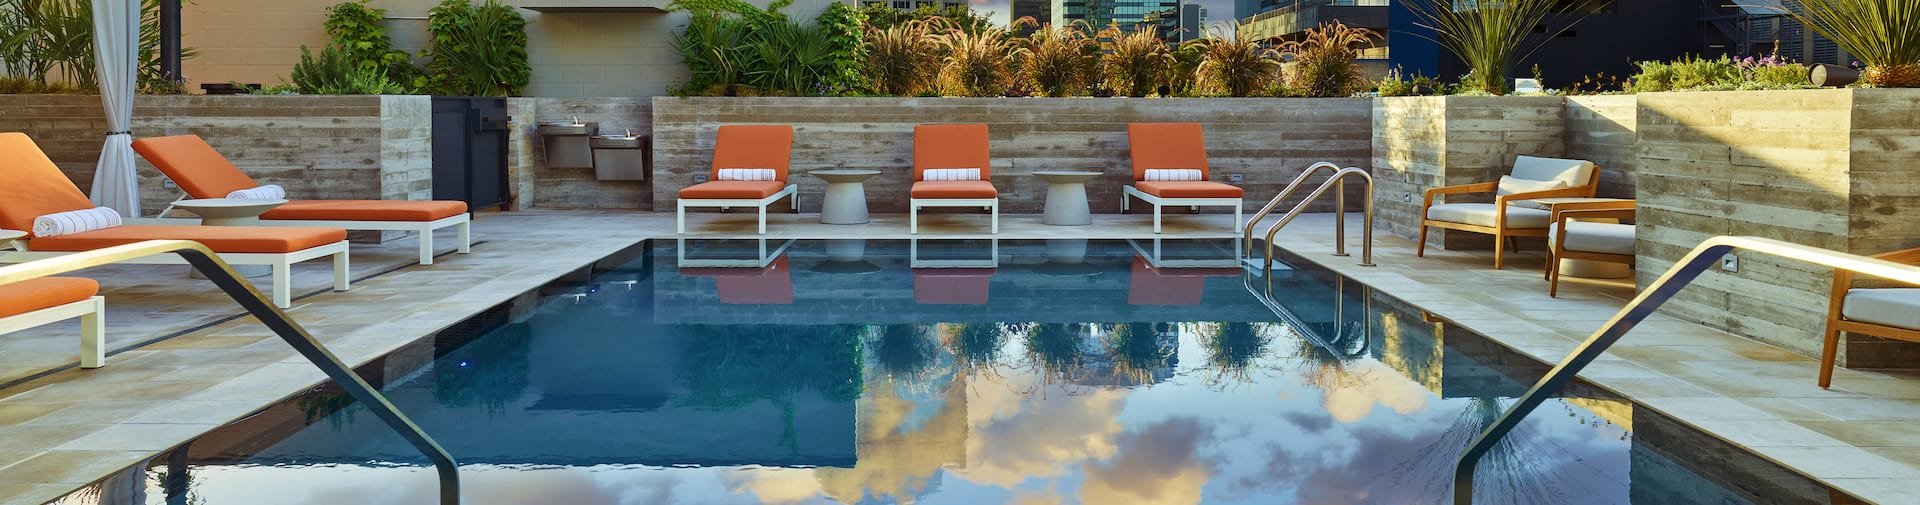 Outdoor pool with loungers